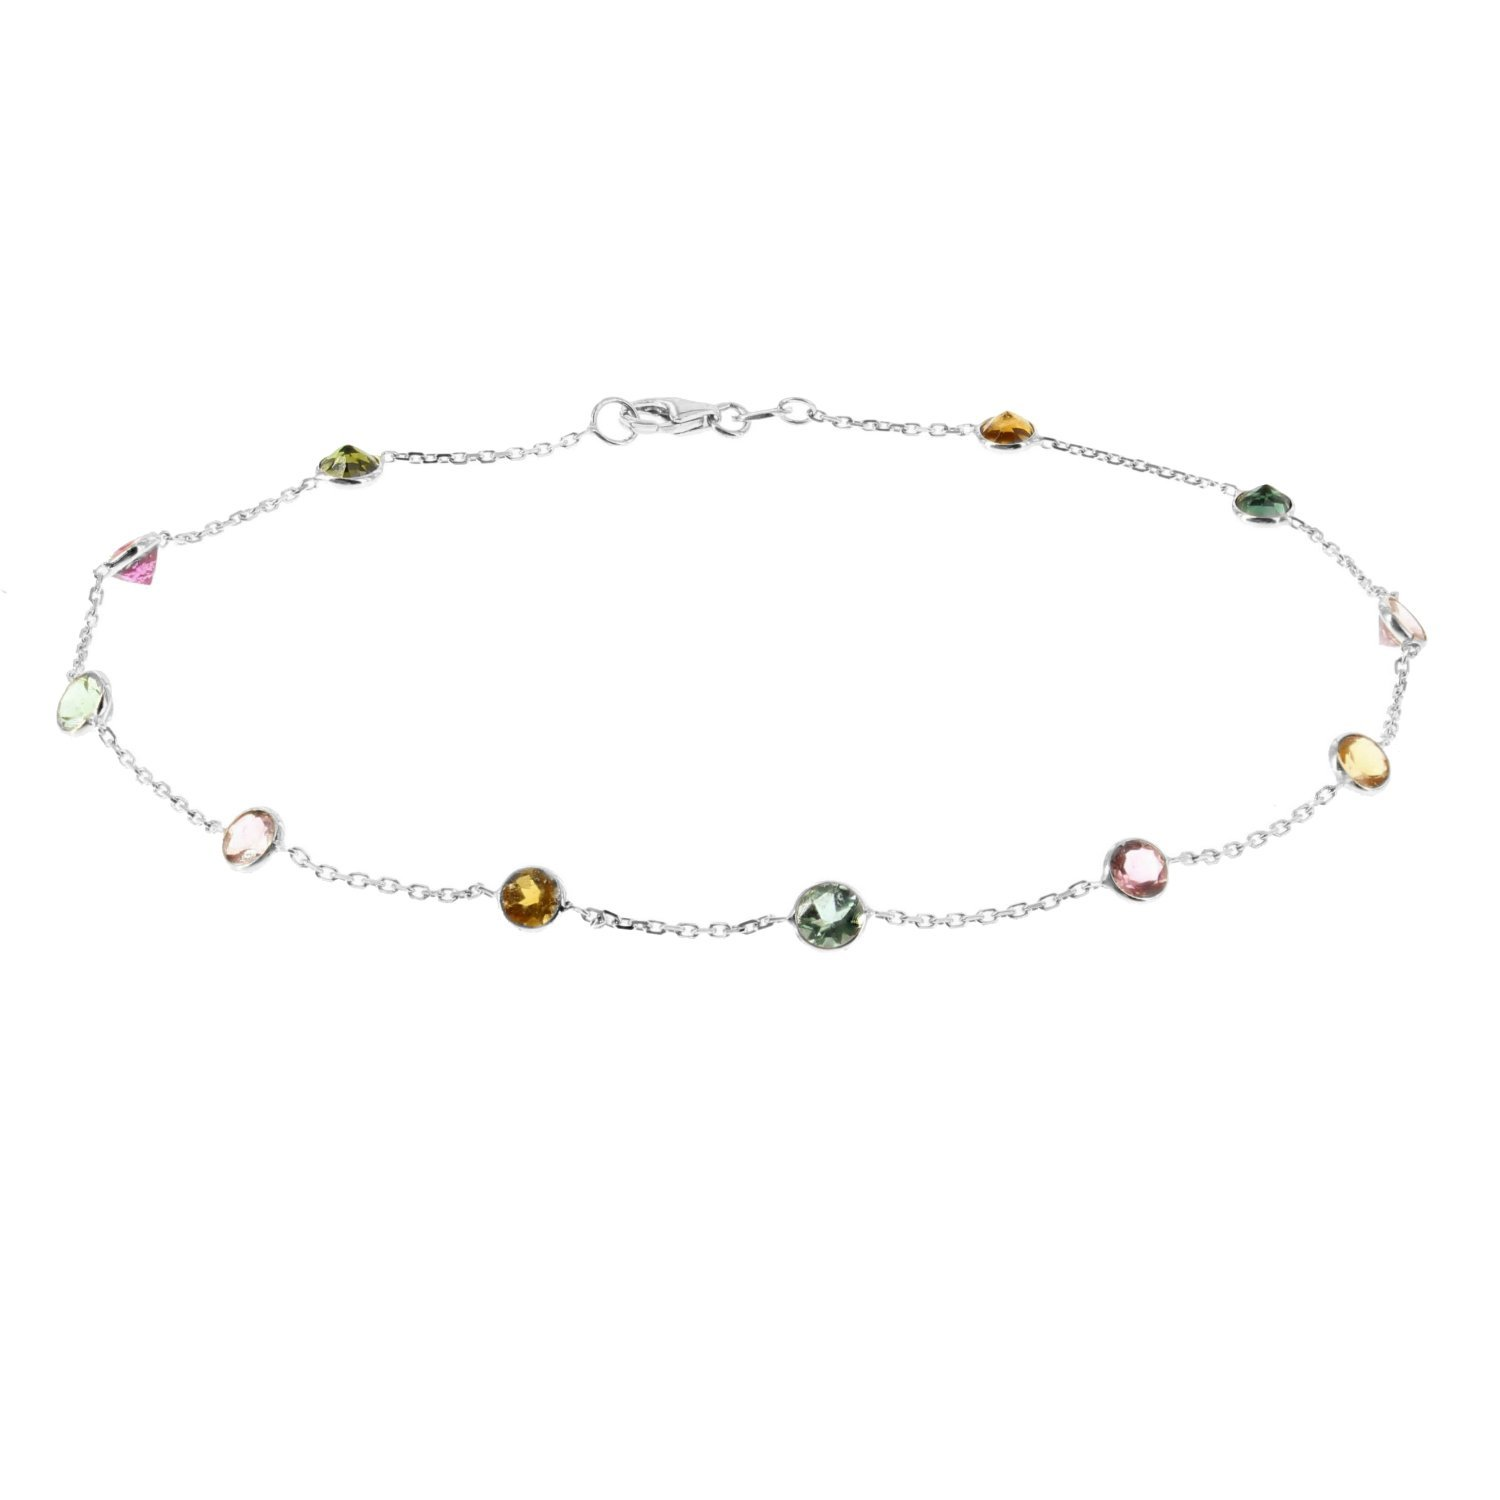 14k White Gold Handmade Station Anklet With Tourmaline Gemstones 9 - 11 Inches